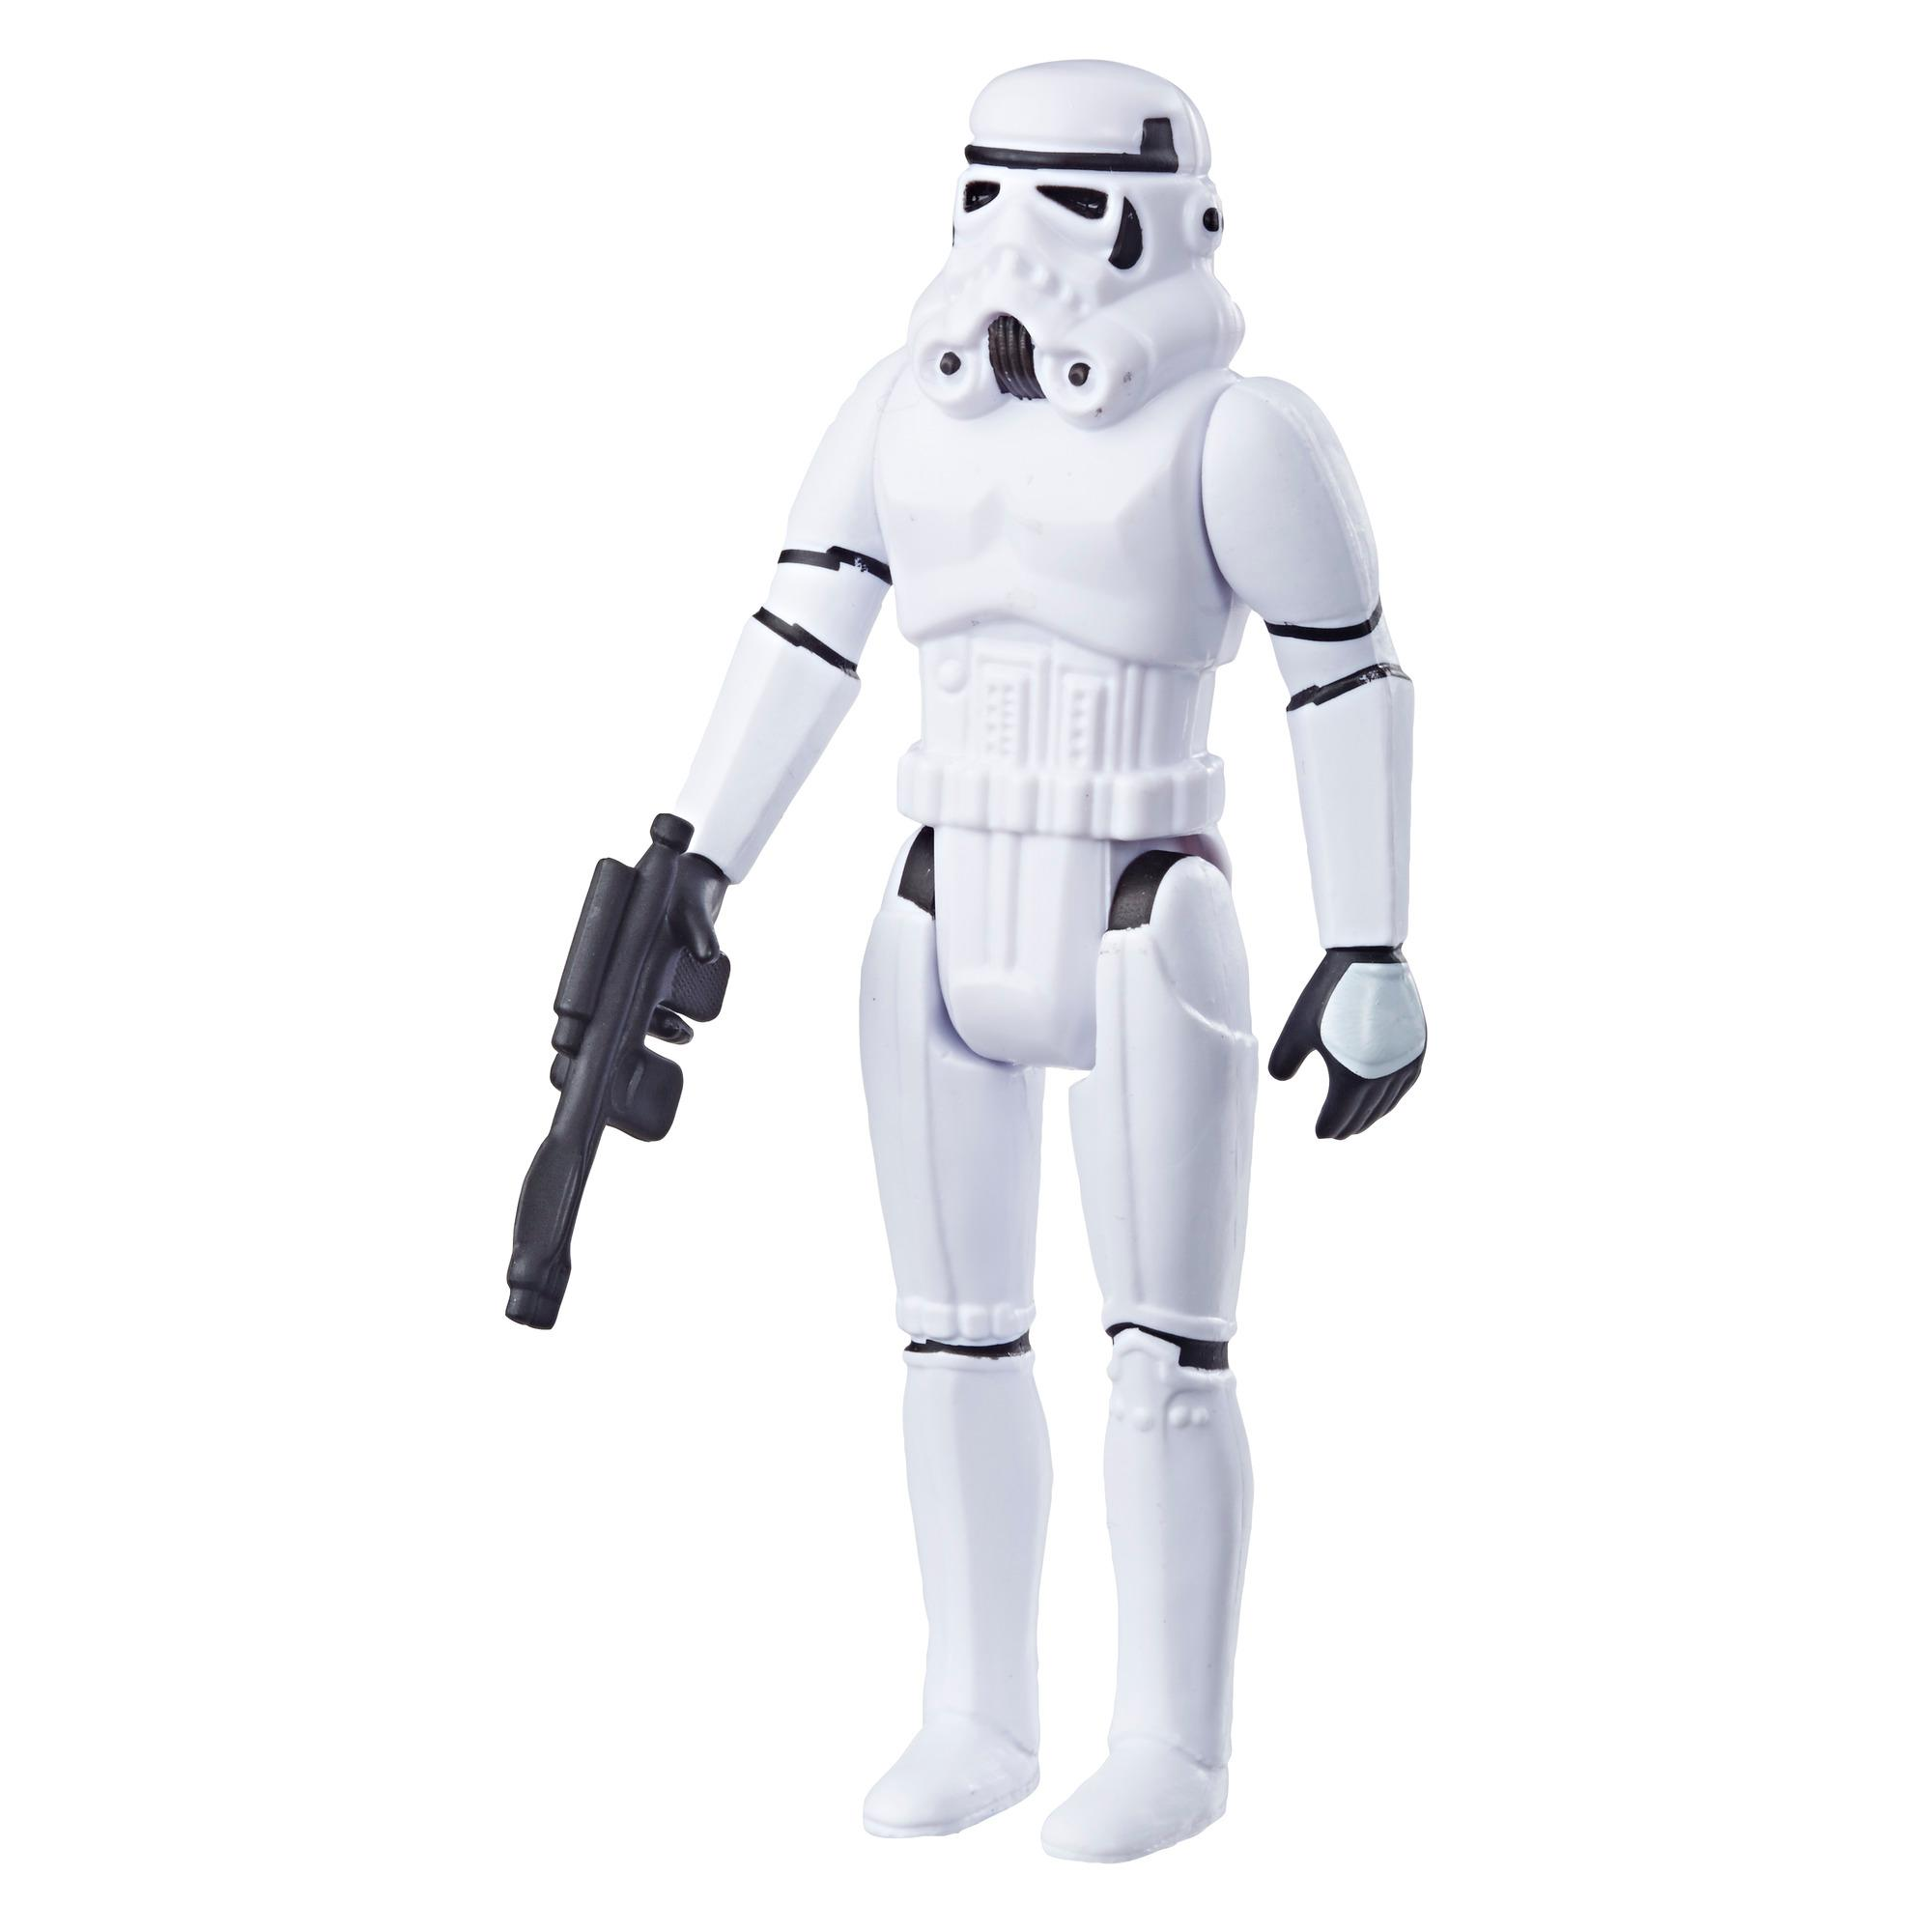 Star Wars Retro Collection Episode IV: A New Hope Stormtrooper 3.75-Inch-Scale Action Figure Toy – Inspired by Classic 1970s-Sculpt and Packaging Collectible Star Wars Figure